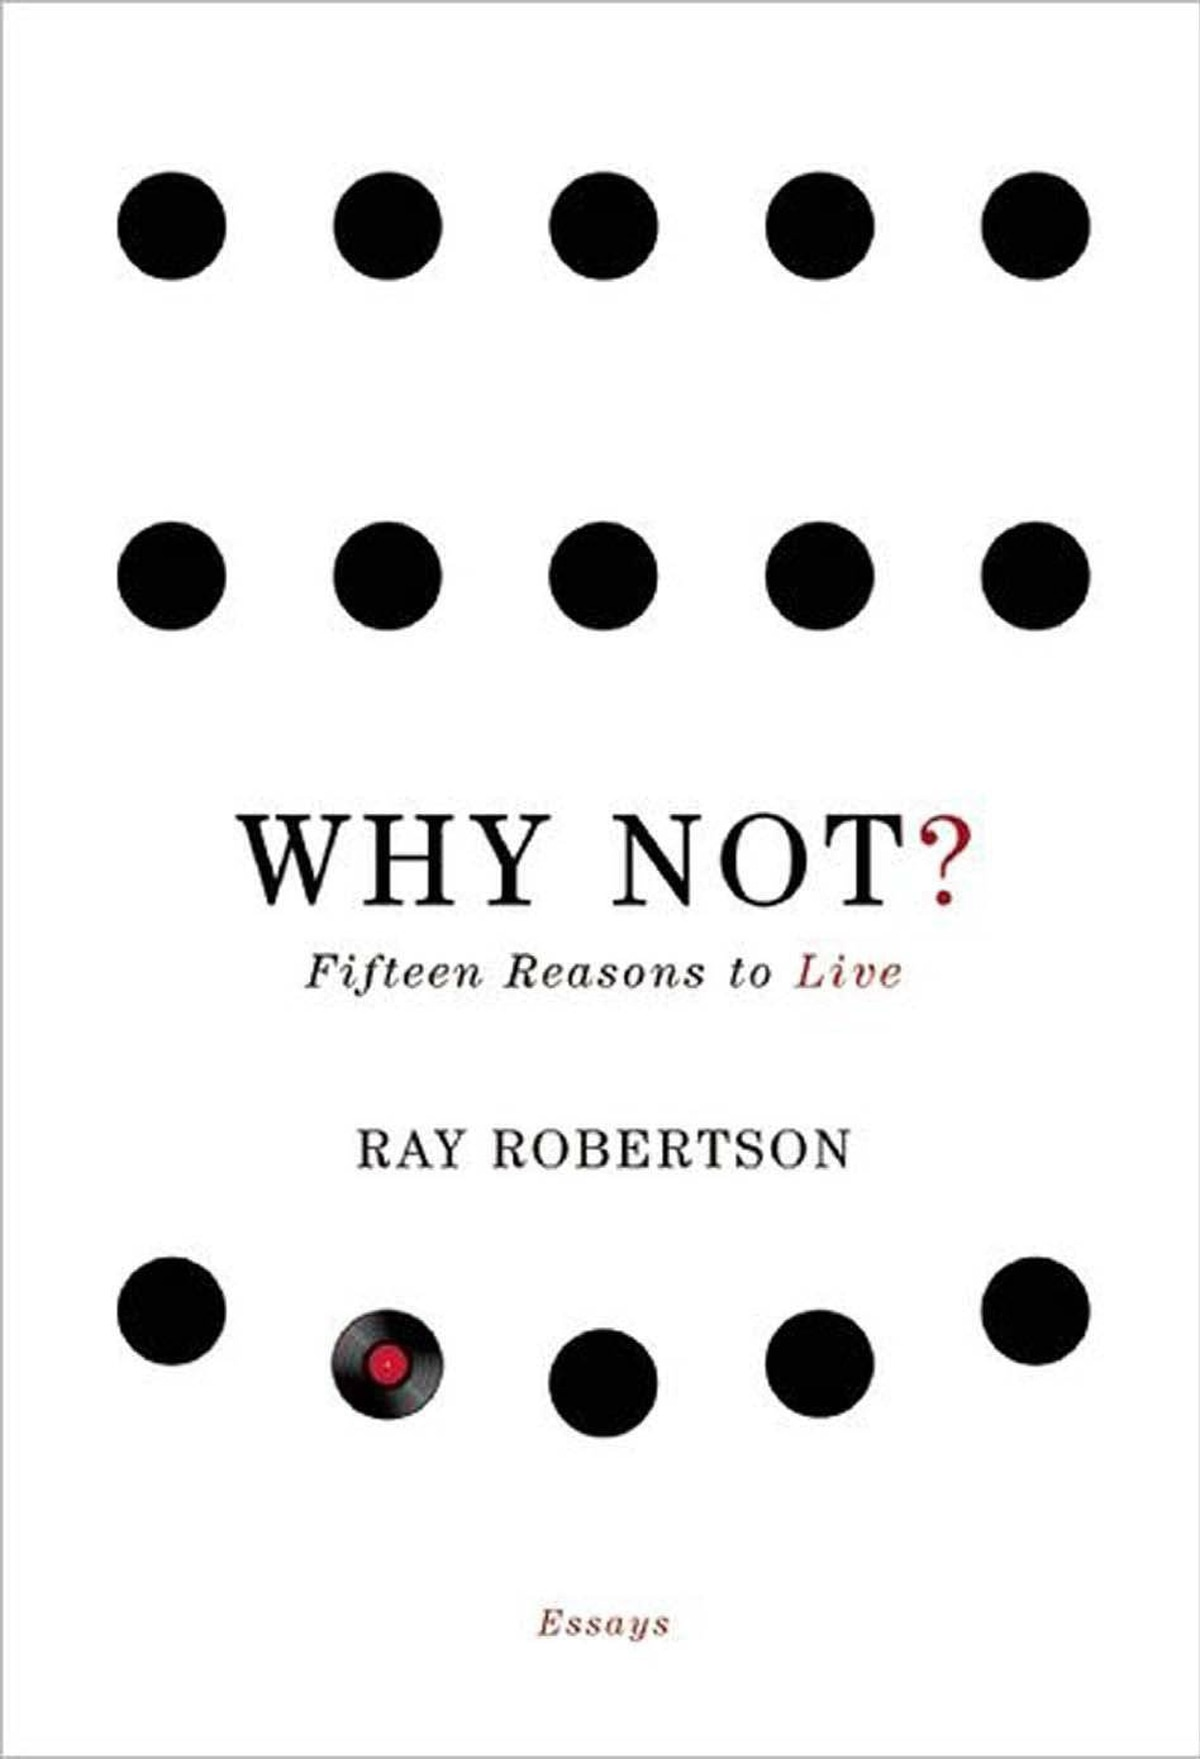 WHY NOT? Fifteen Reasons to Live By Ray Robertson (Biblioasis) These thoughtful meditations on the big questions of life (and death) emerge from mental pain and a writer's need for whatever helps you make it through the night. I like Robertson's well-read mind, from which he draws on an array of thinkers from Seneca to Nietzsche in the tradition of Montaigne's investigation into what we know about ourselves. – Stan Persky